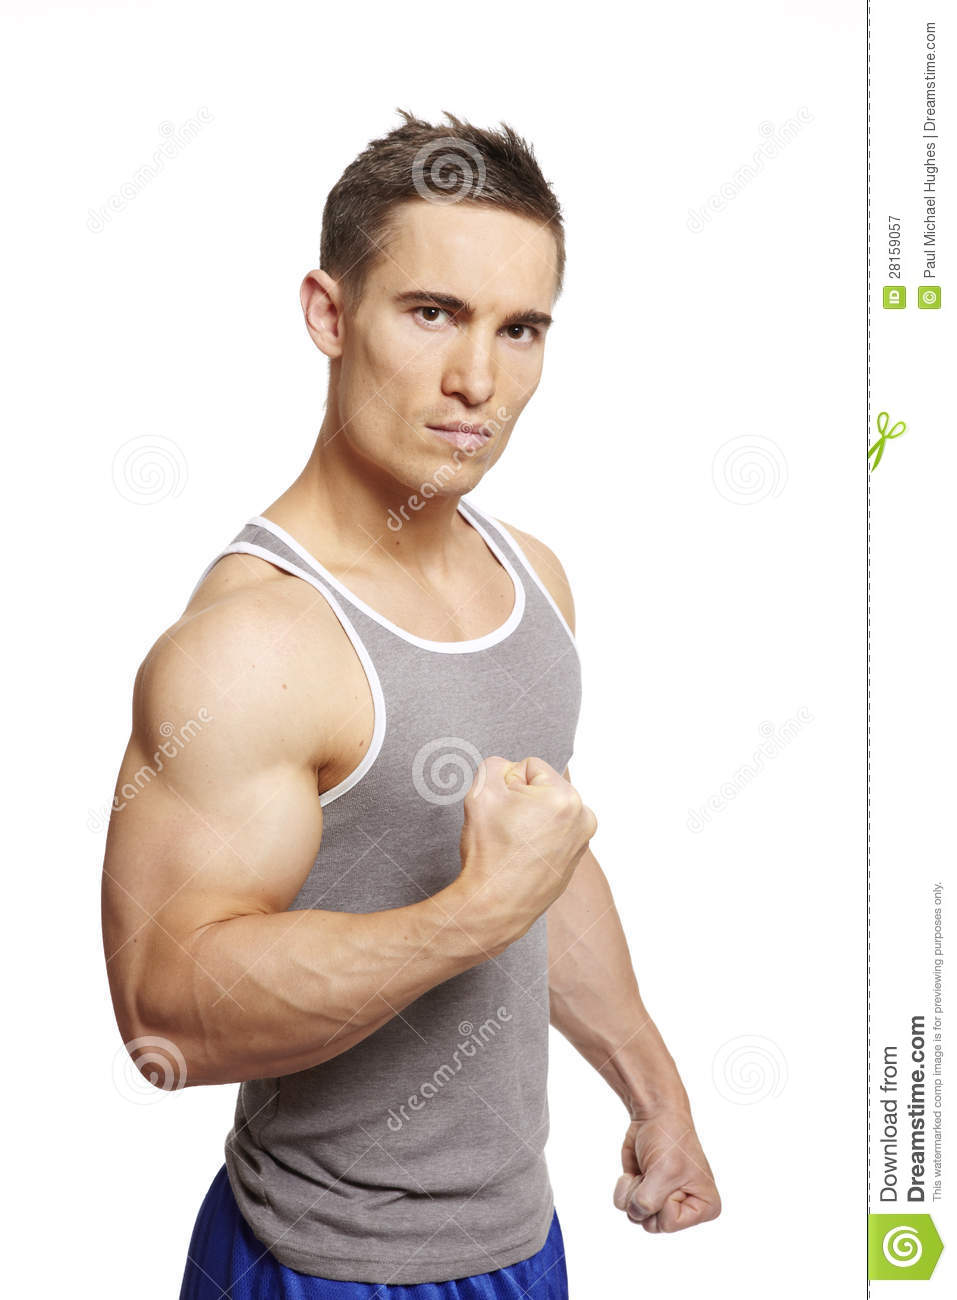 Muscular Young Man Flexing Biceps Isolatedhandsome Muscular Young Man ...